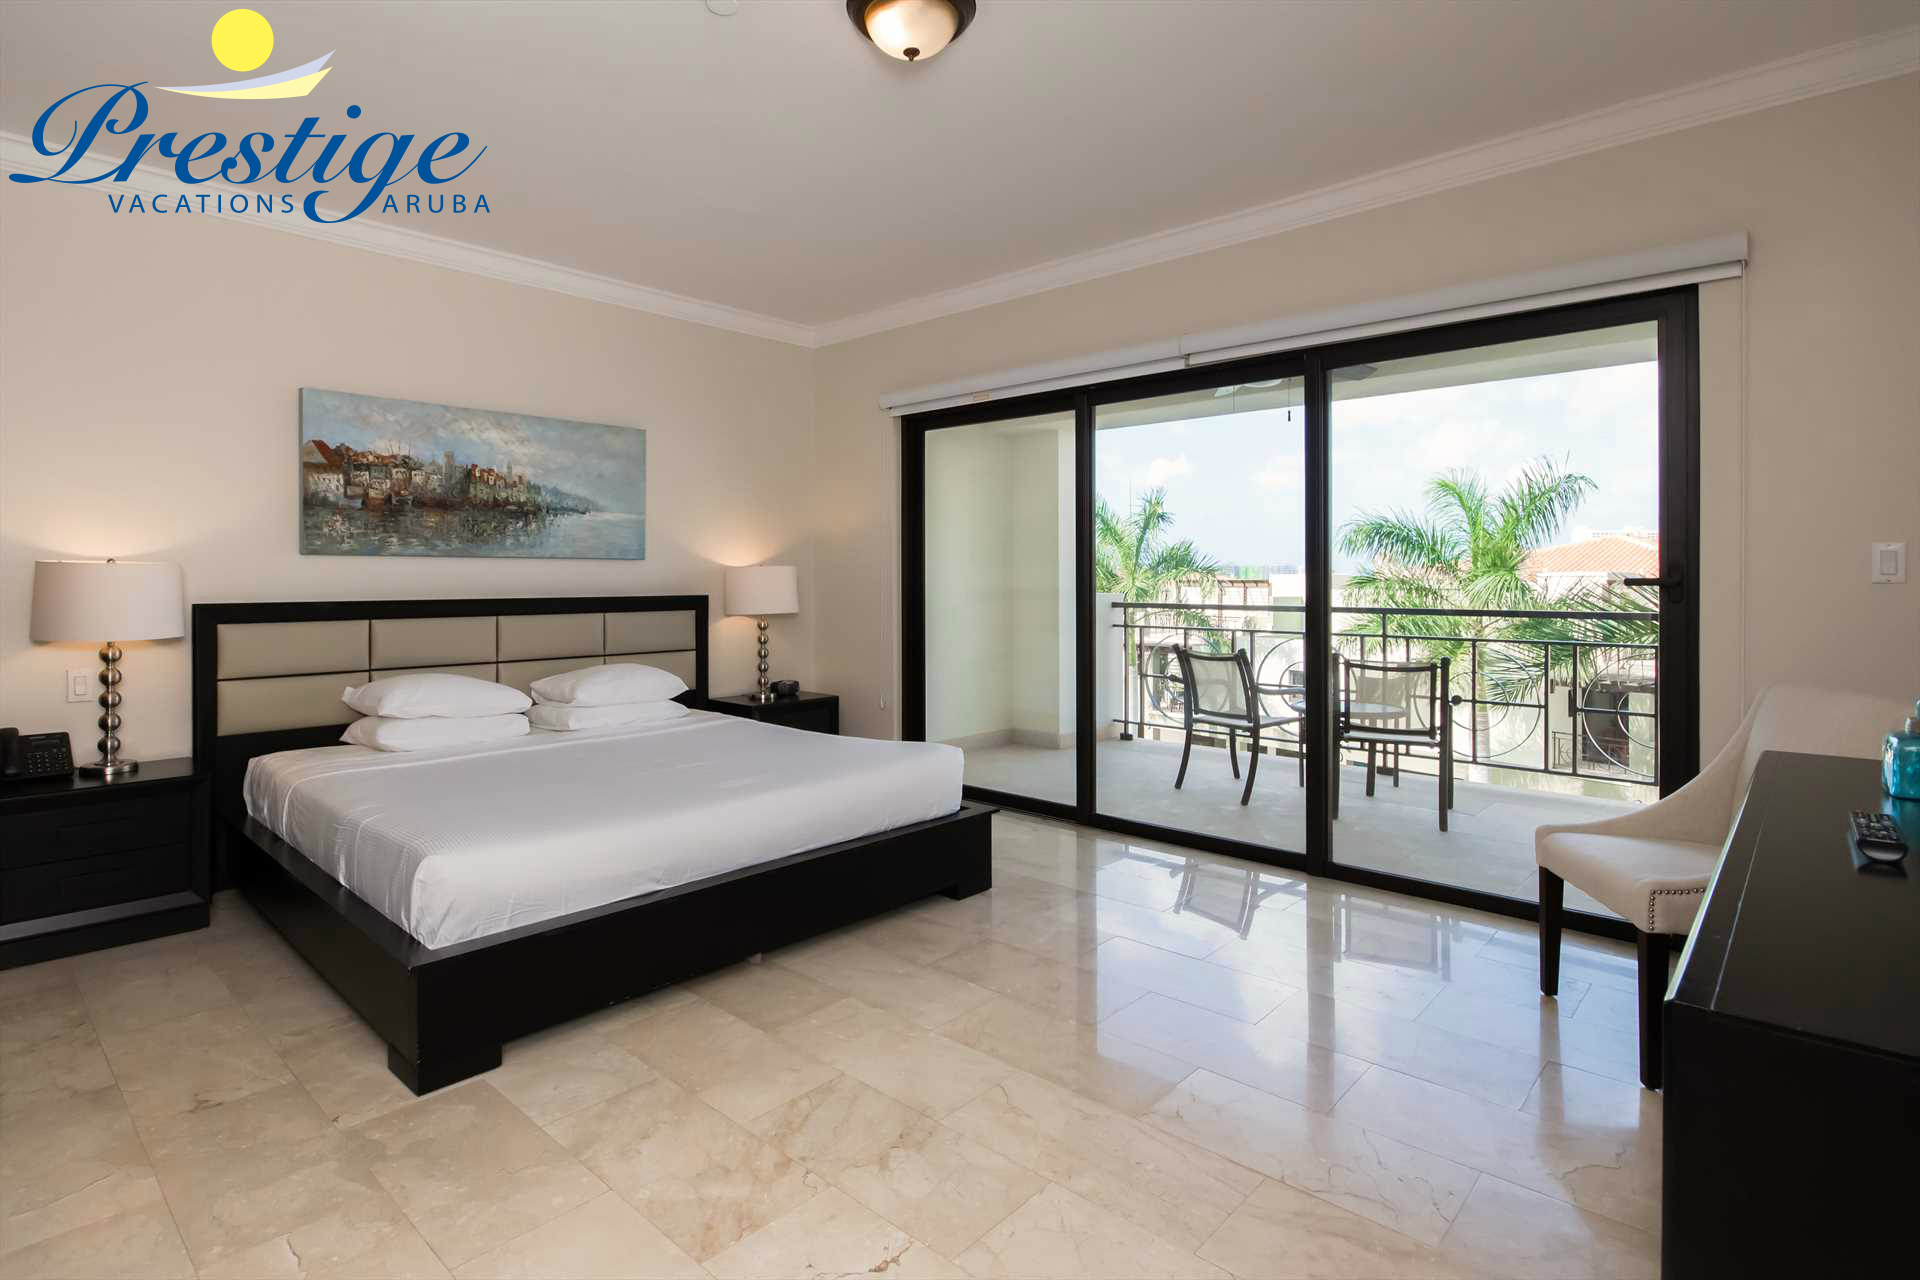 Master bedroom with a king-size bed and access to the balcony